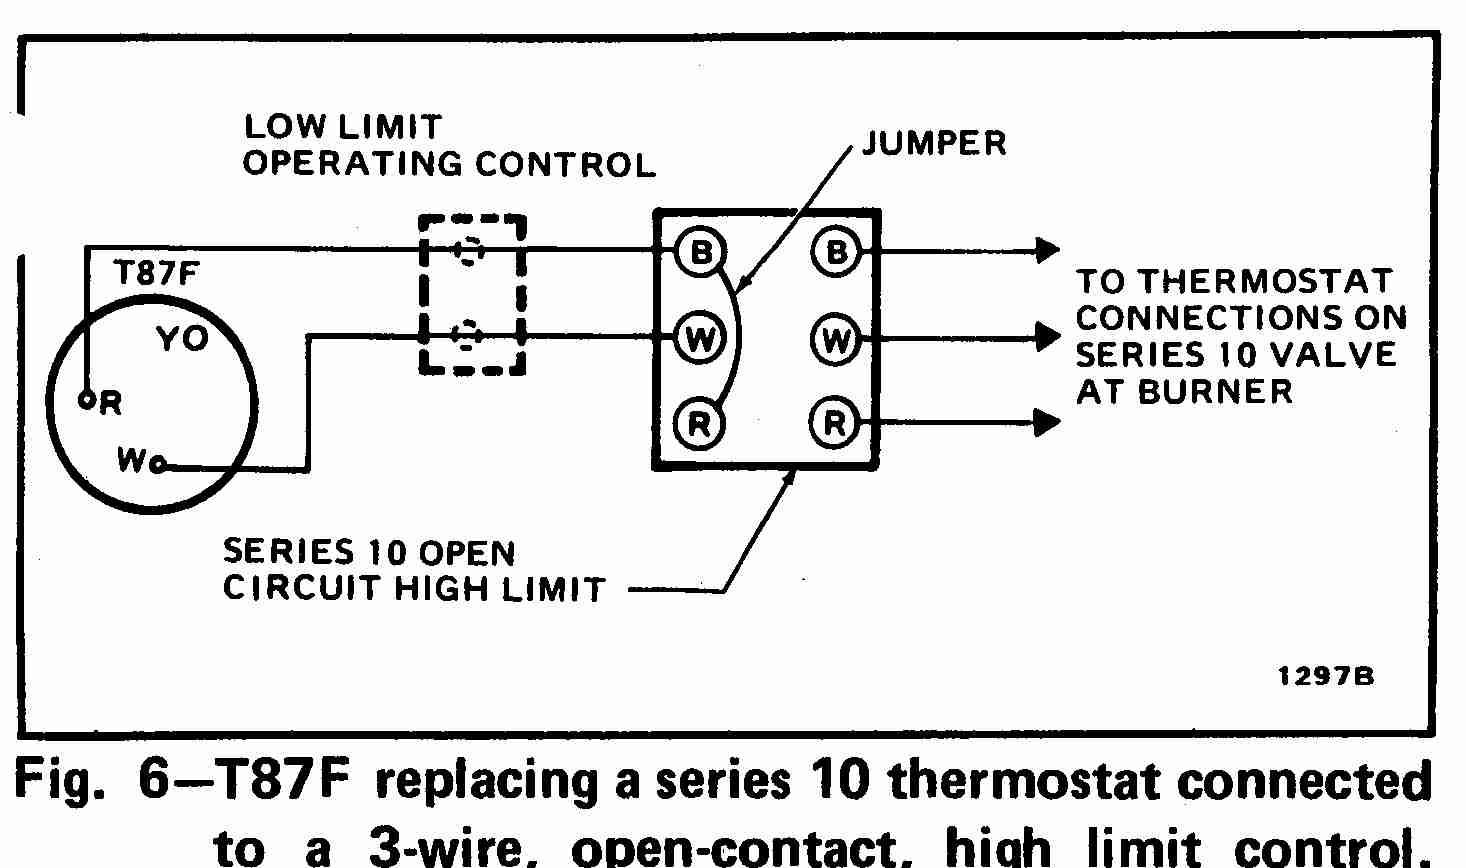 thermostat wiring diagram thermostat wiring diagram heat pump rh parsplus co furnace wire diagram thermostat wiring furnace wire diagram thermostat wiring